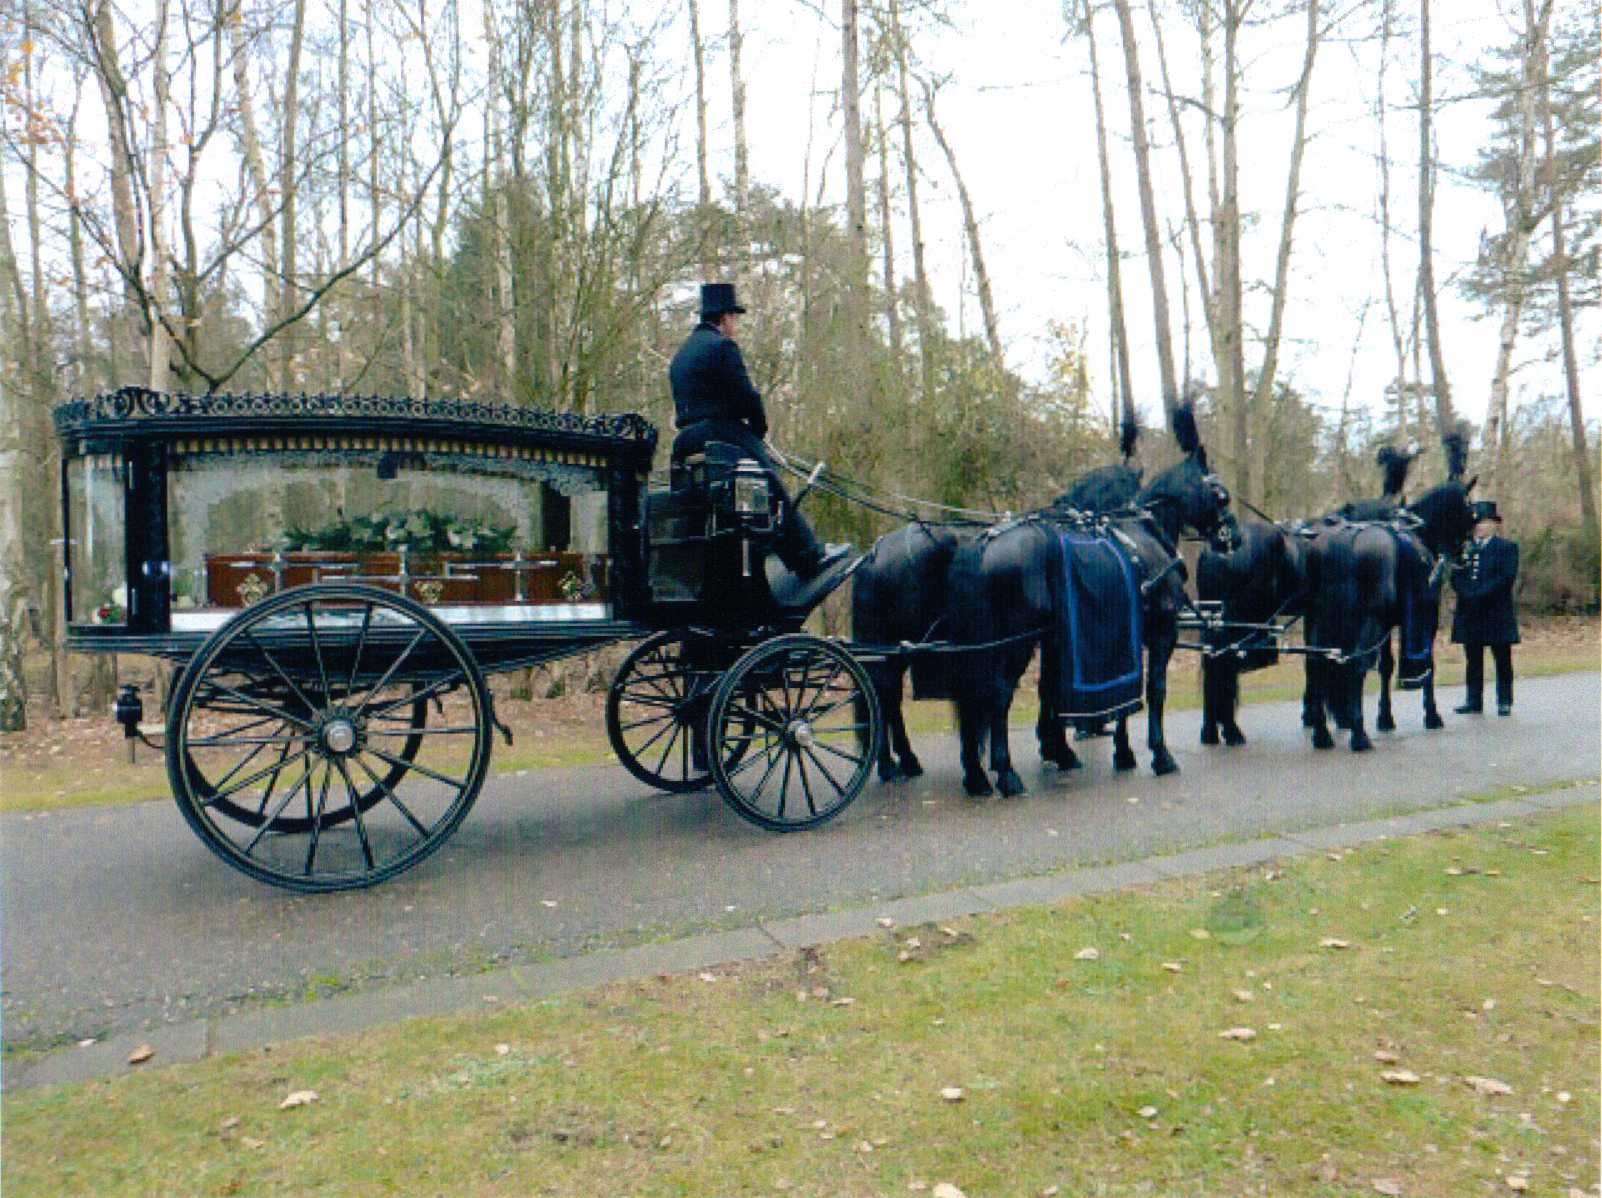 Mr Robert Smith's Funeral